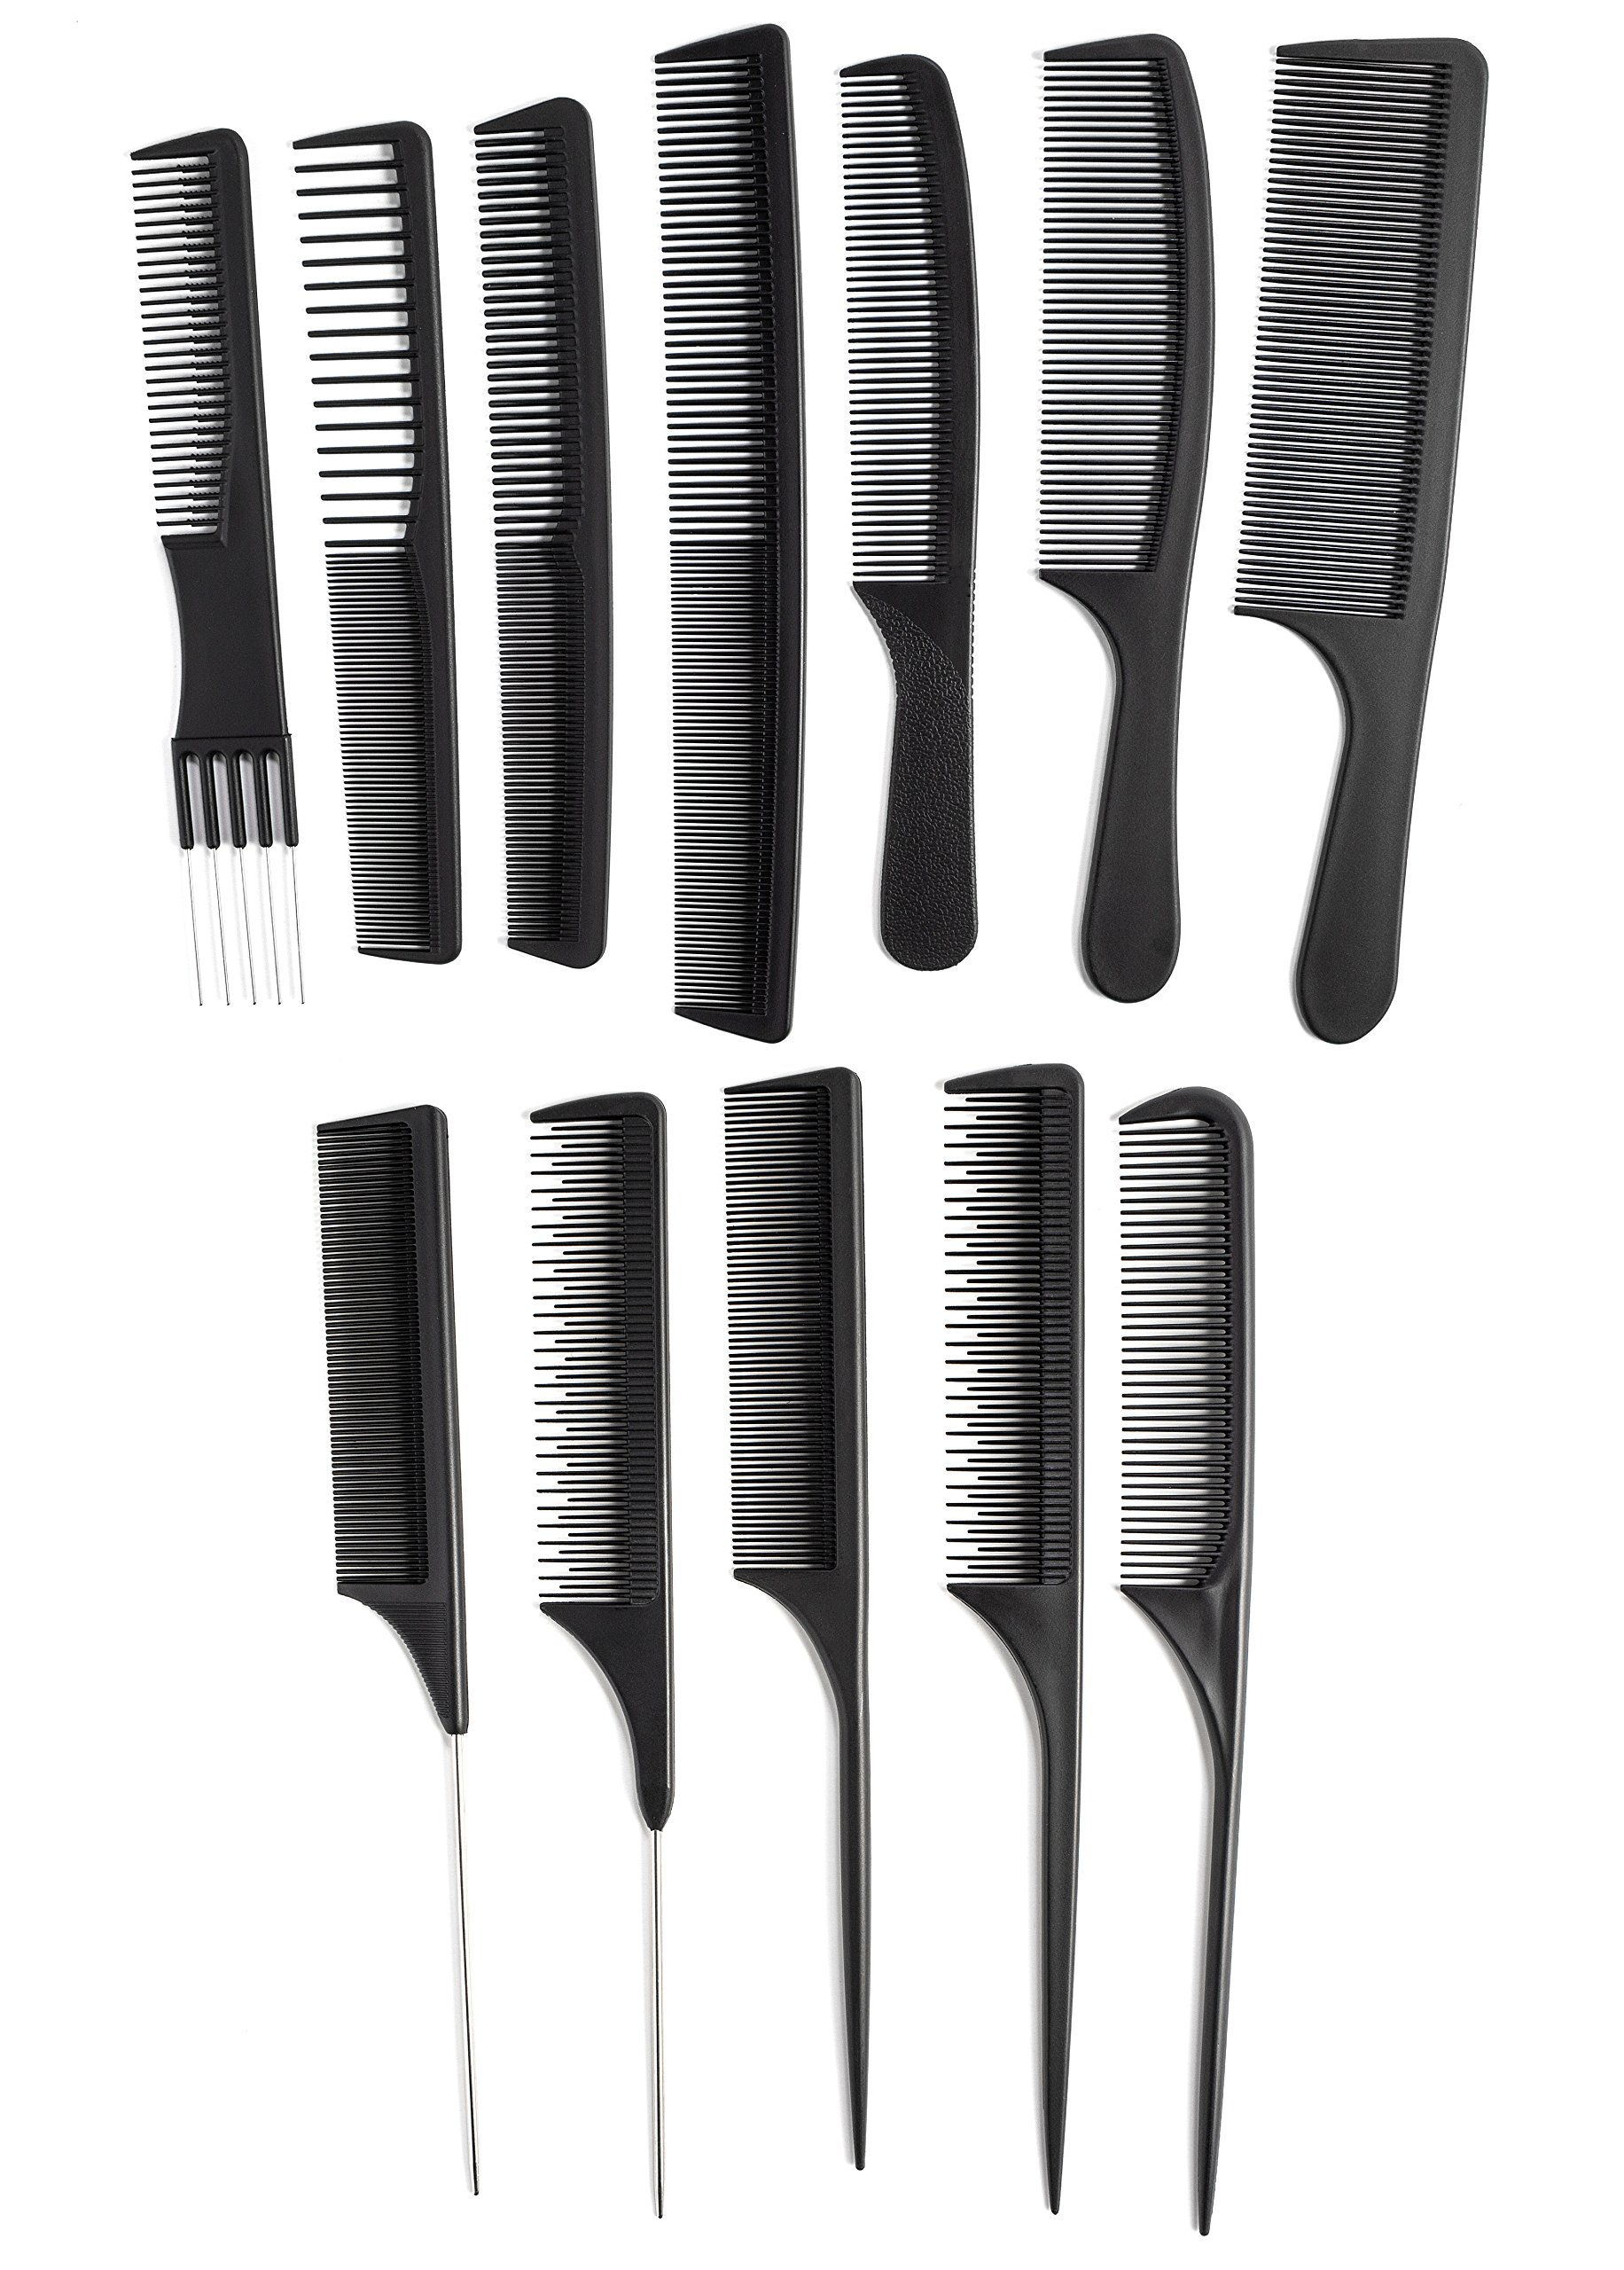 OneDor Professional Salon Hairdressing Styling Tool Hair Cutting Comb Sets Kit